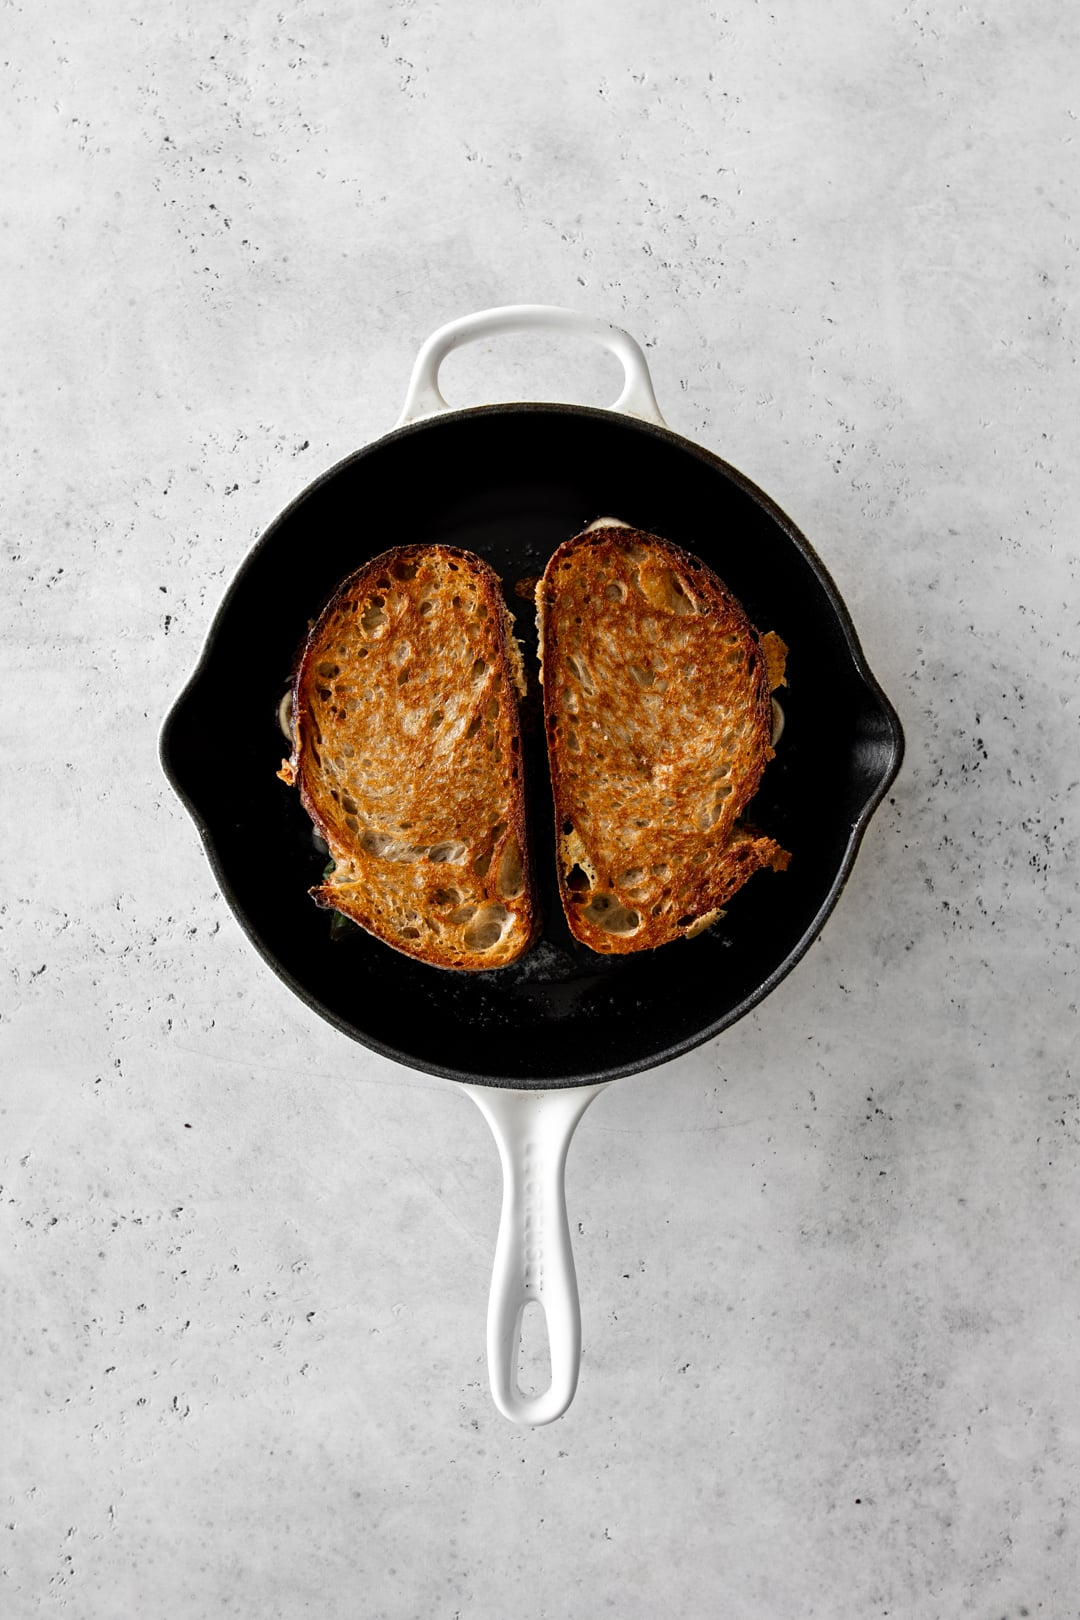 Two grilled cheese sandwiches cooking in a cast-iron skillet